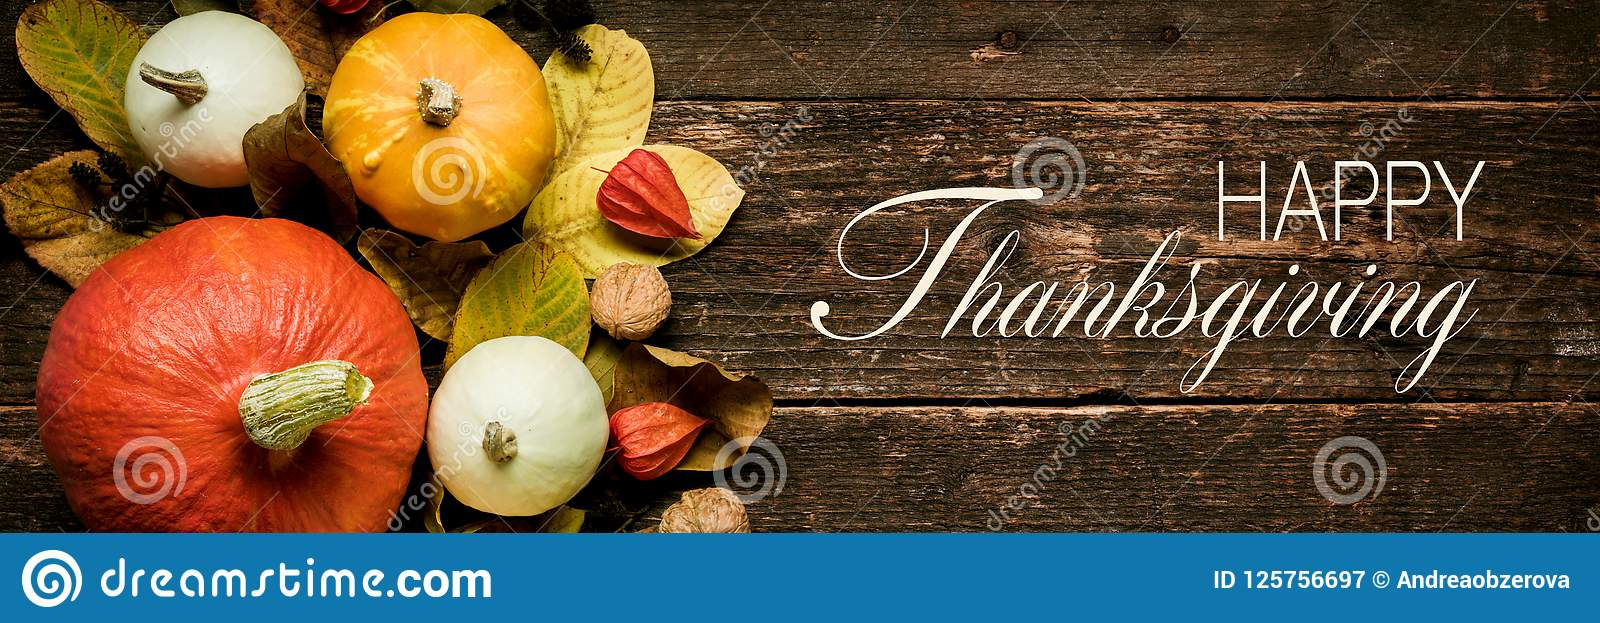 Autumn Harvest and Holiday still life. Happy Thanksgiving Banner. Selection of various pumpkins on dark wooden background.